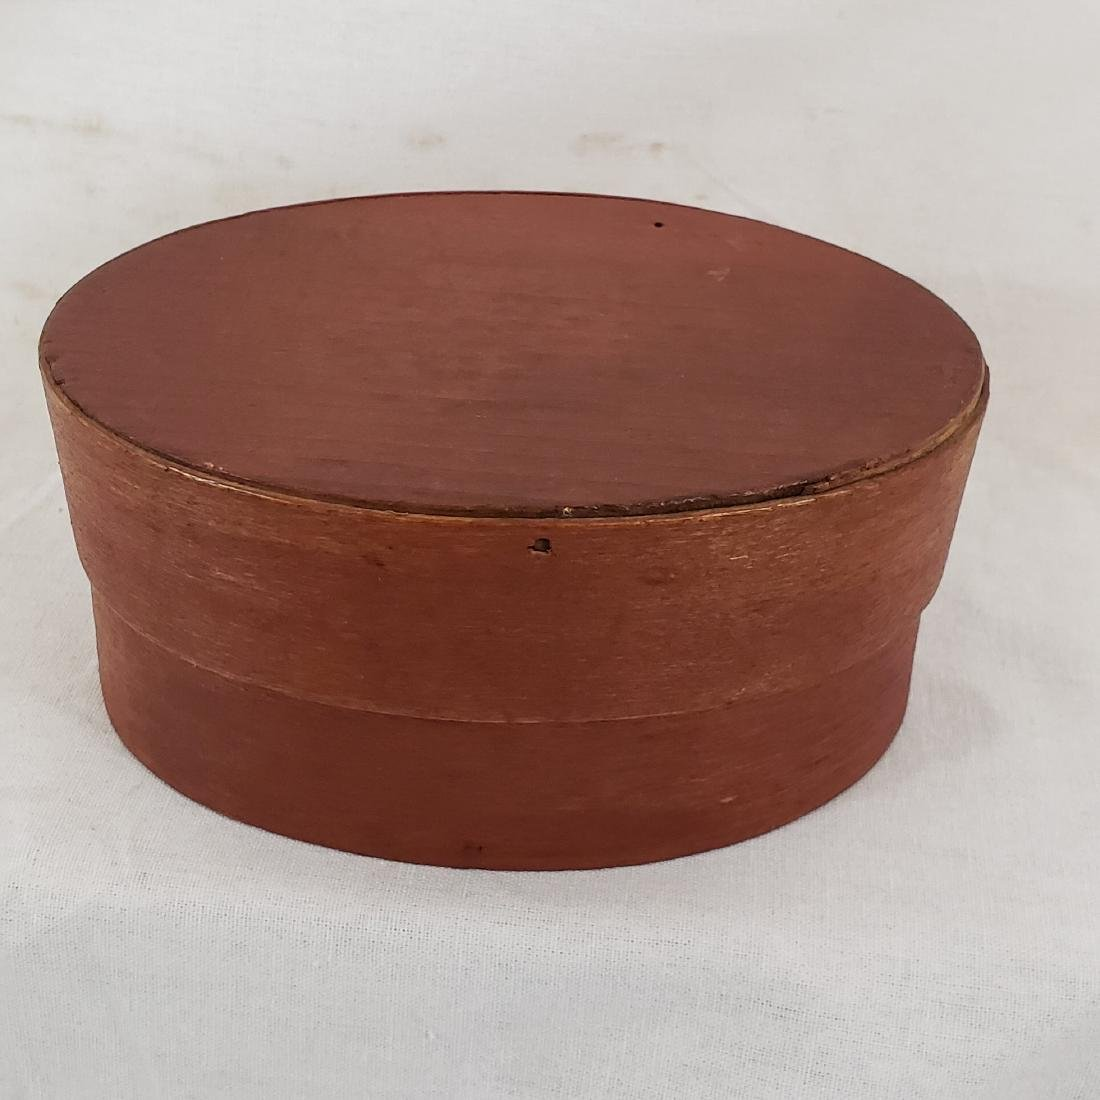 Harvard Style Red Oval Pantry Box Ca 1850-70 - 2